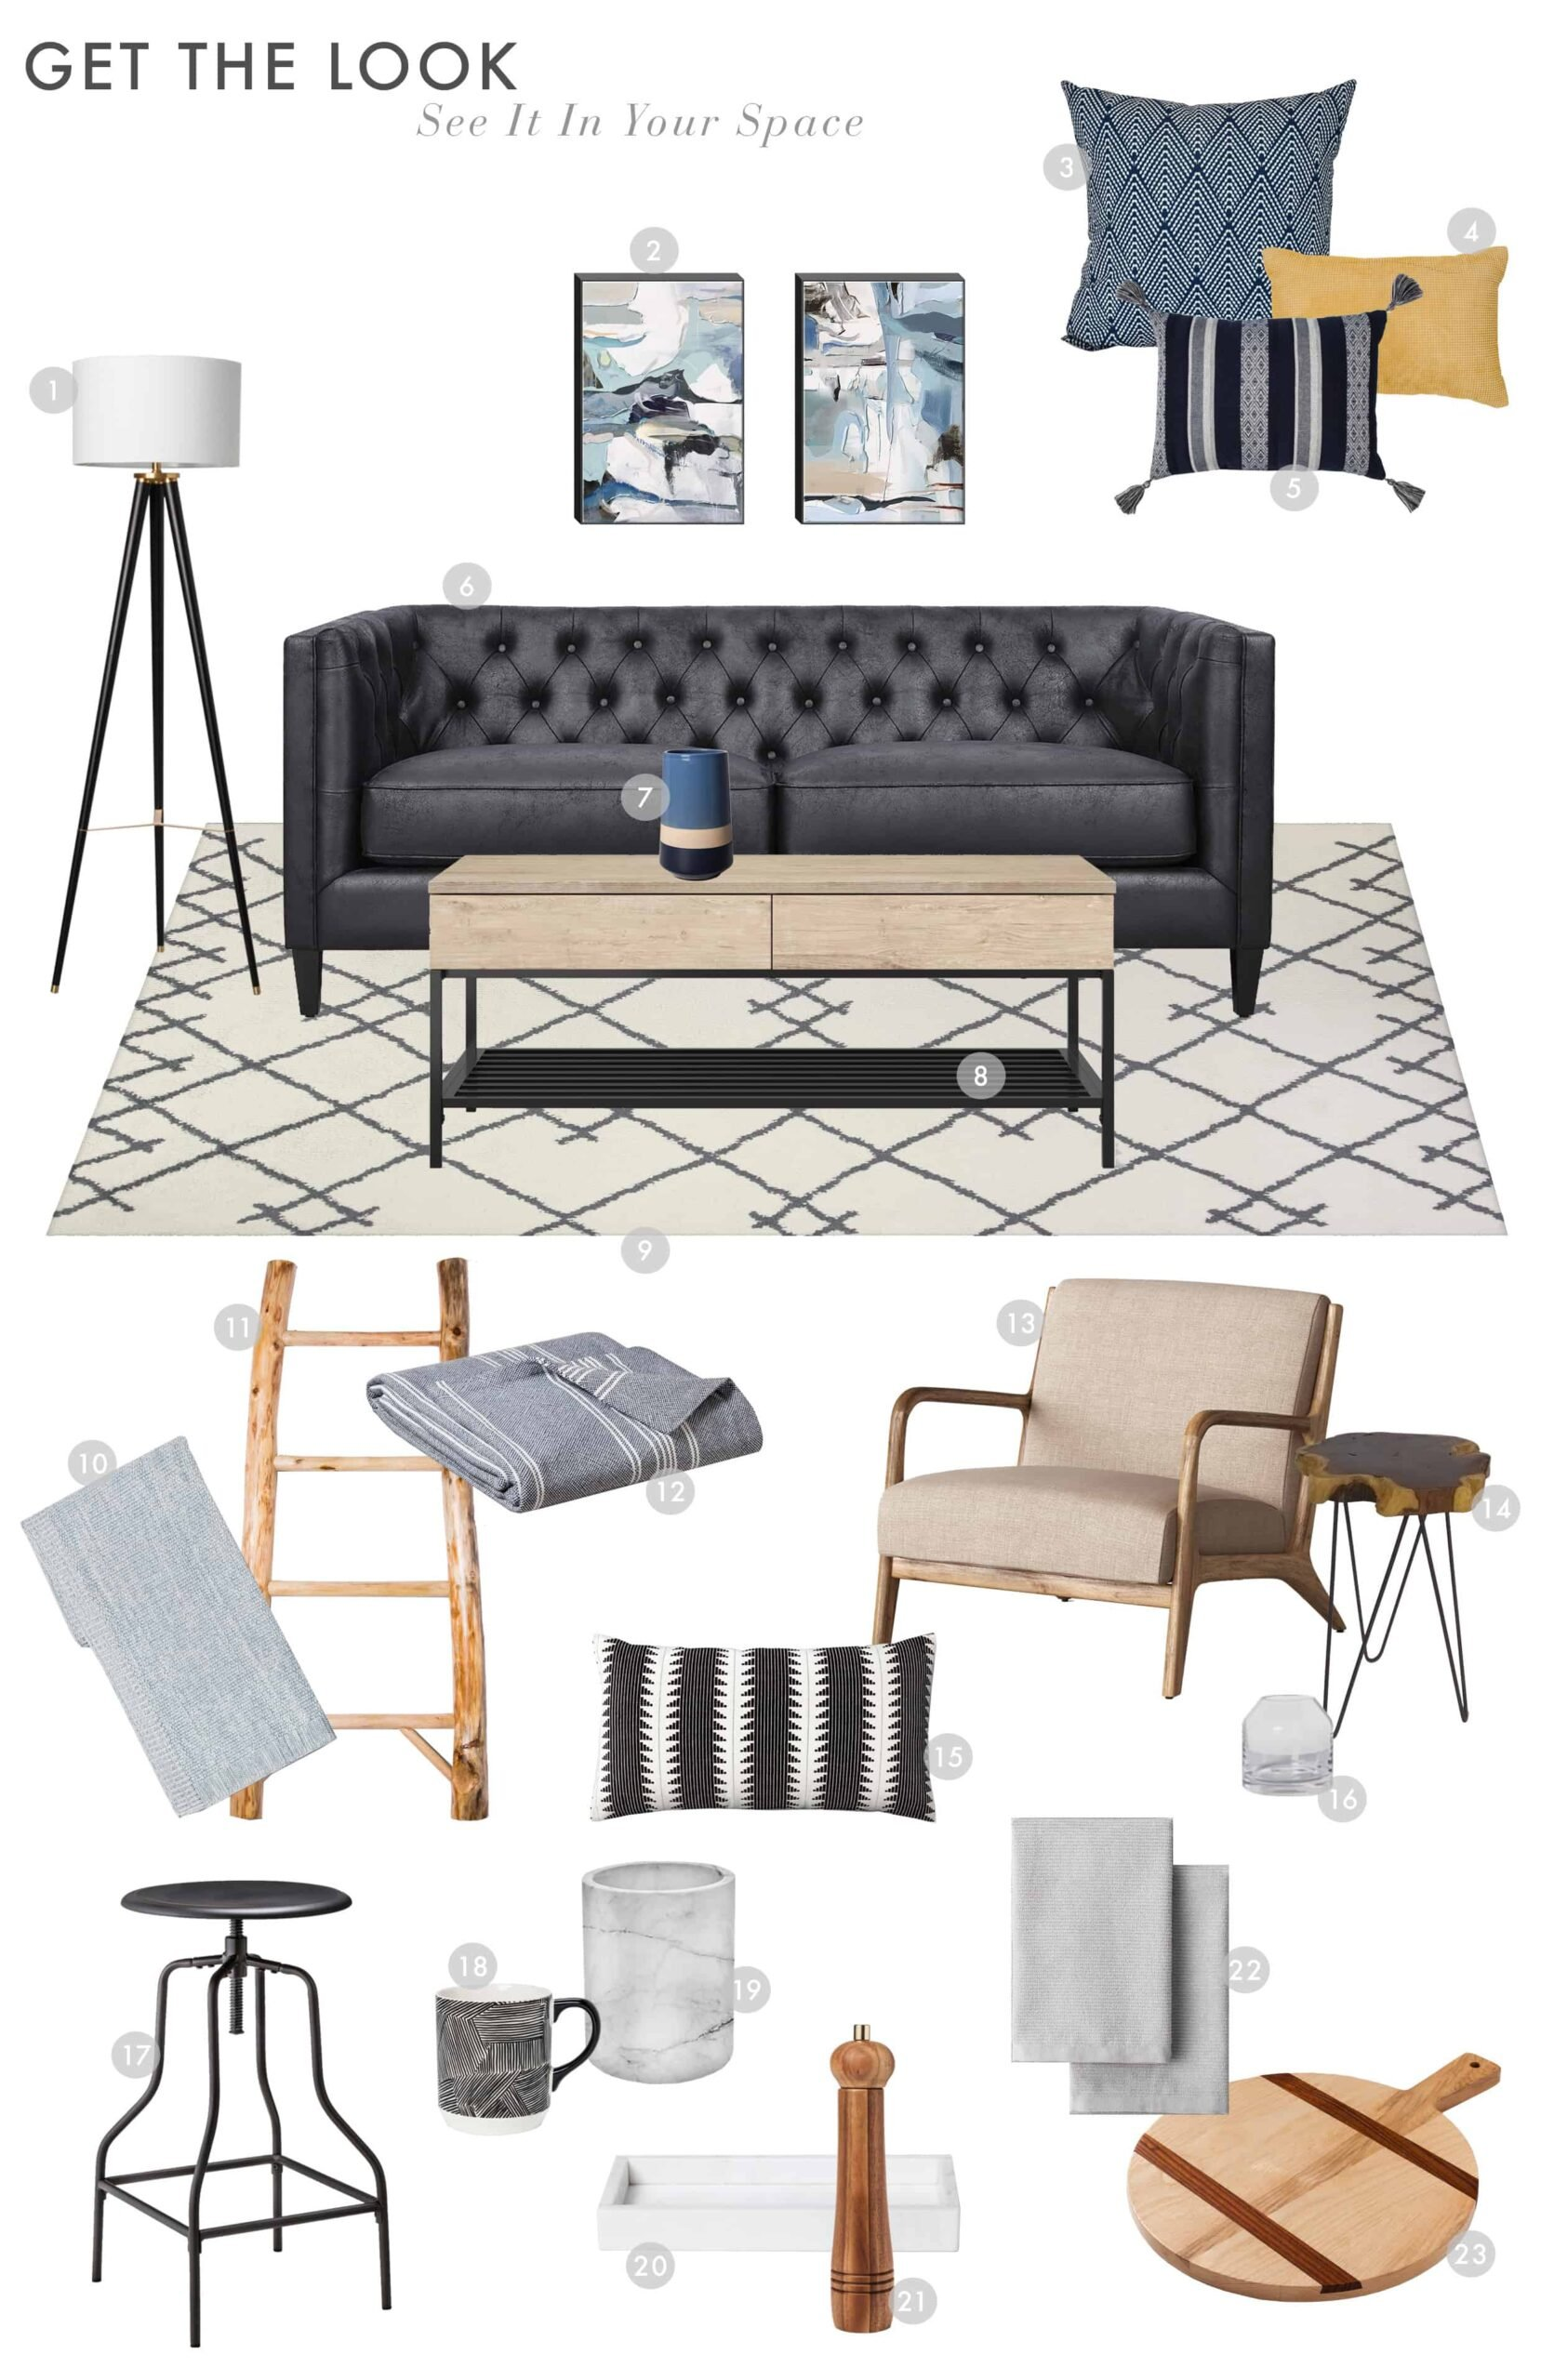 Emily Henderson Target See It In Your Space Get The Look 1